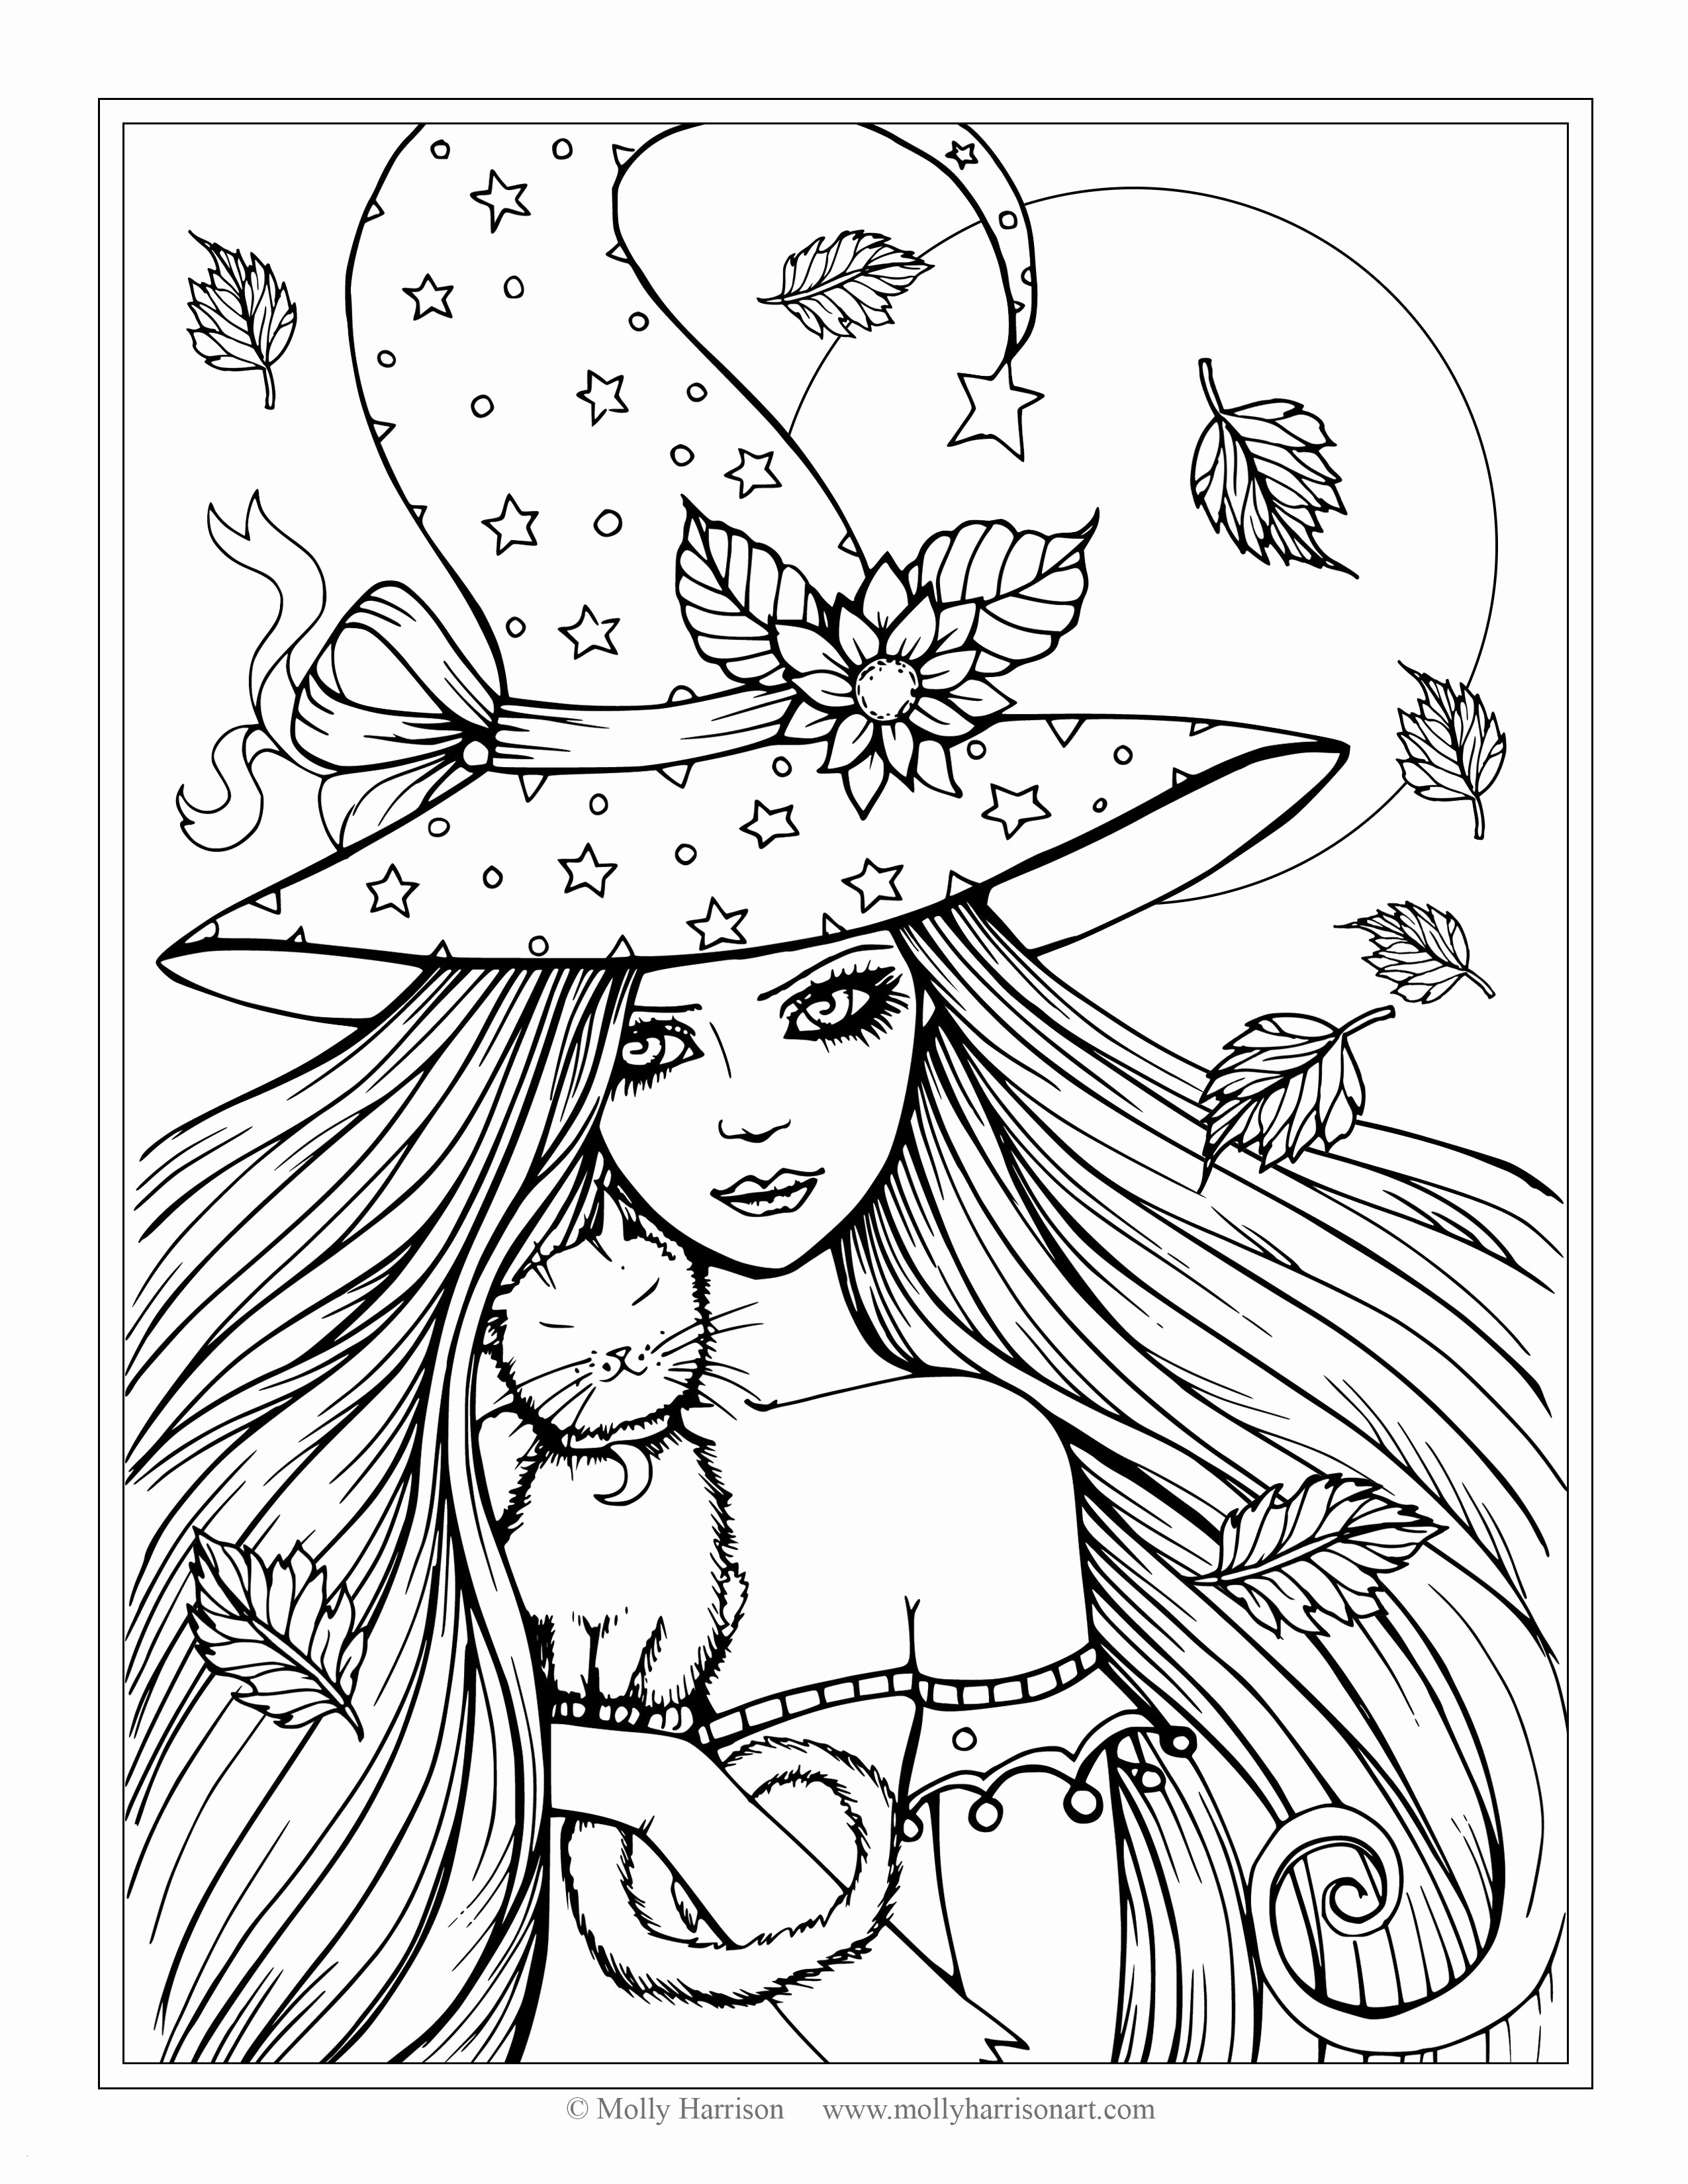 free coloring pages for toddlers Download-Free Printable Coloring Pages for toddlers Free Printable Coloring Pages for Kids Stylish Best Printable Cds 0d 1-k